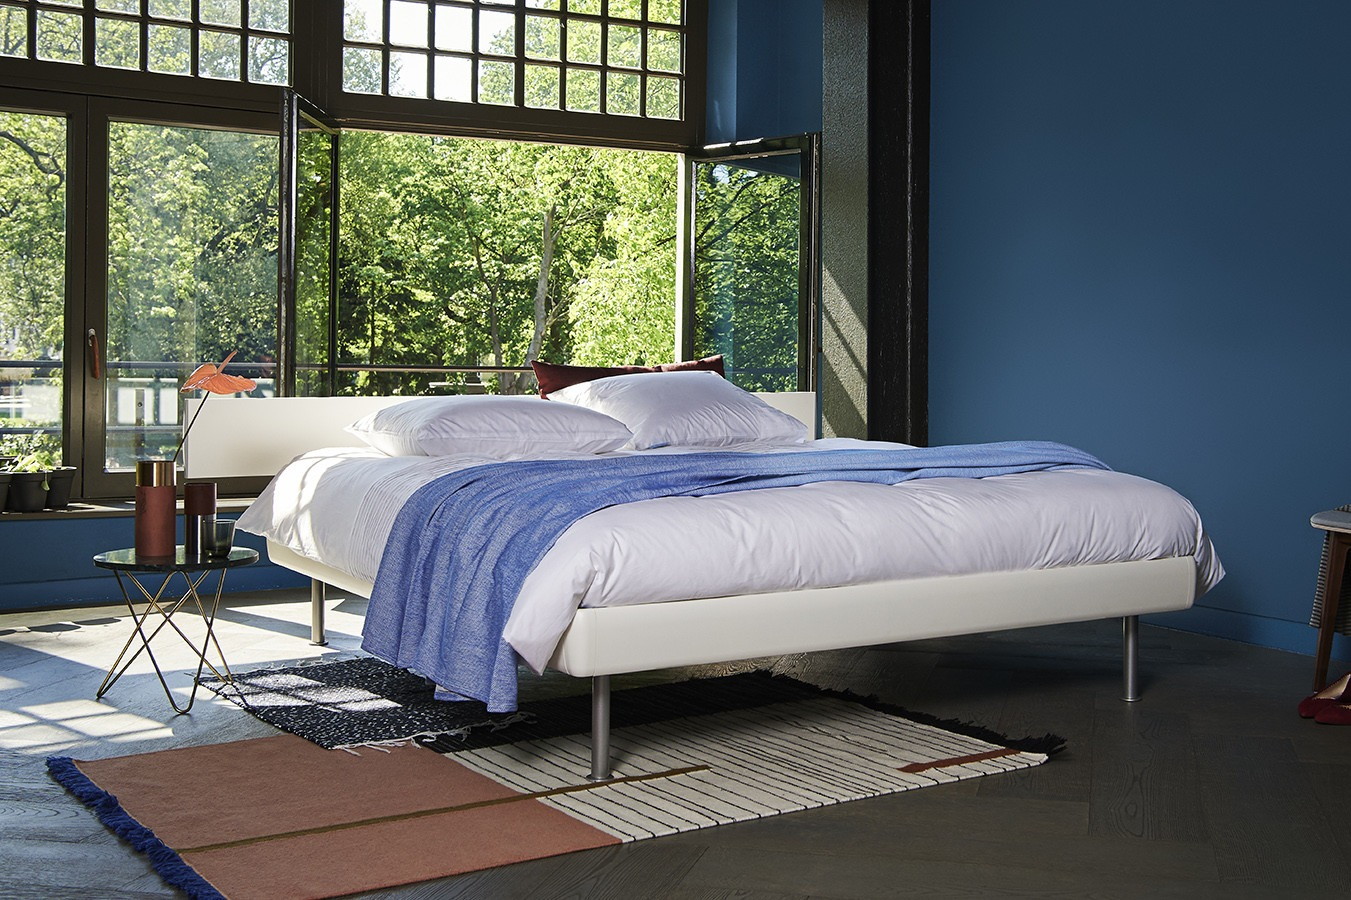 Match bed